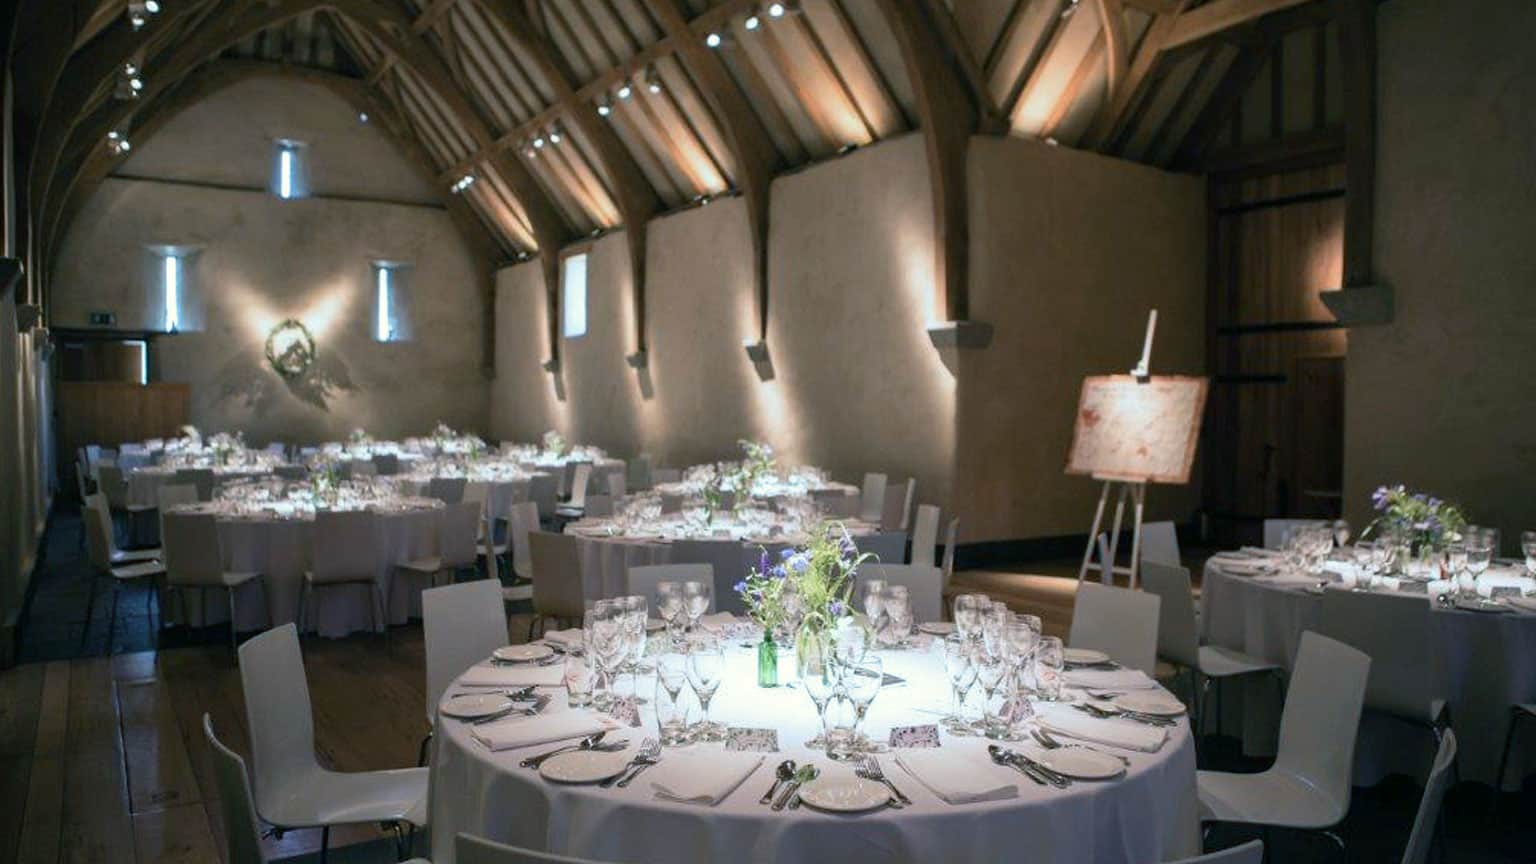 Wedding Breakfast, Great Barn Devon, Wedding Venue Devon